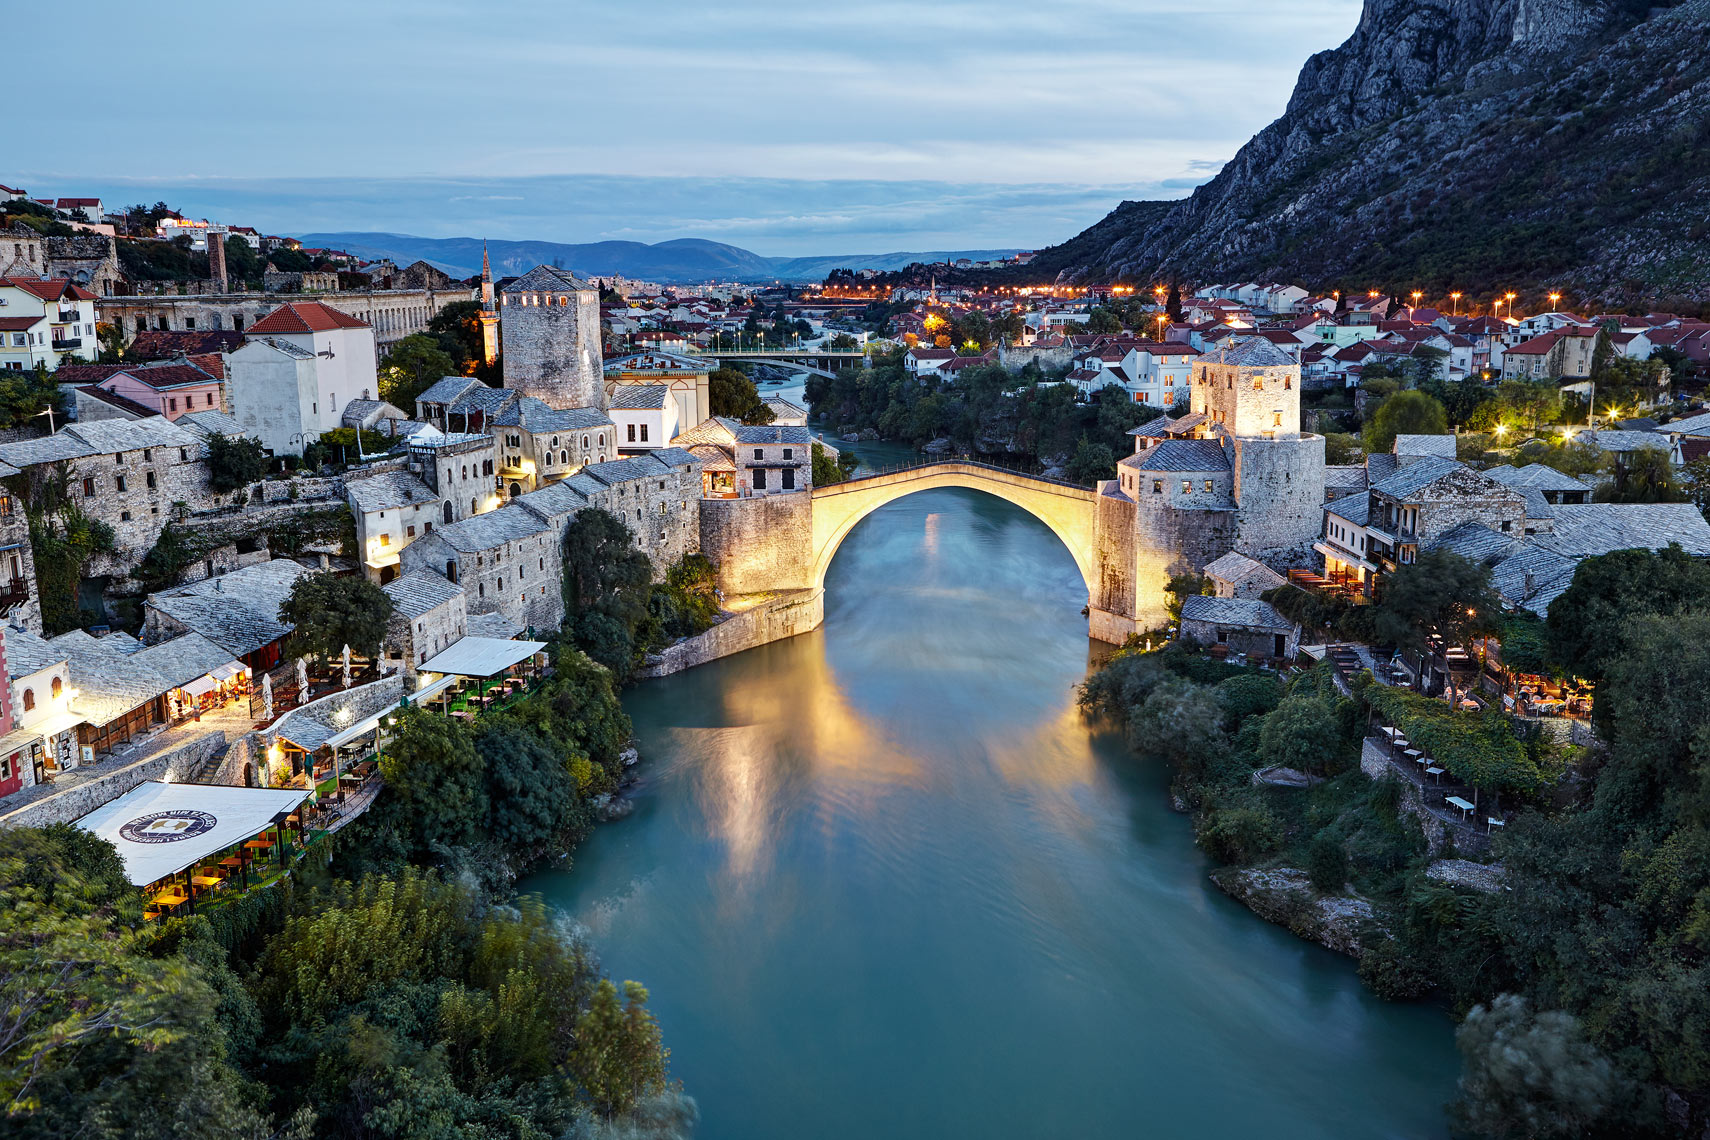 Mostar and Neretva River at dusk